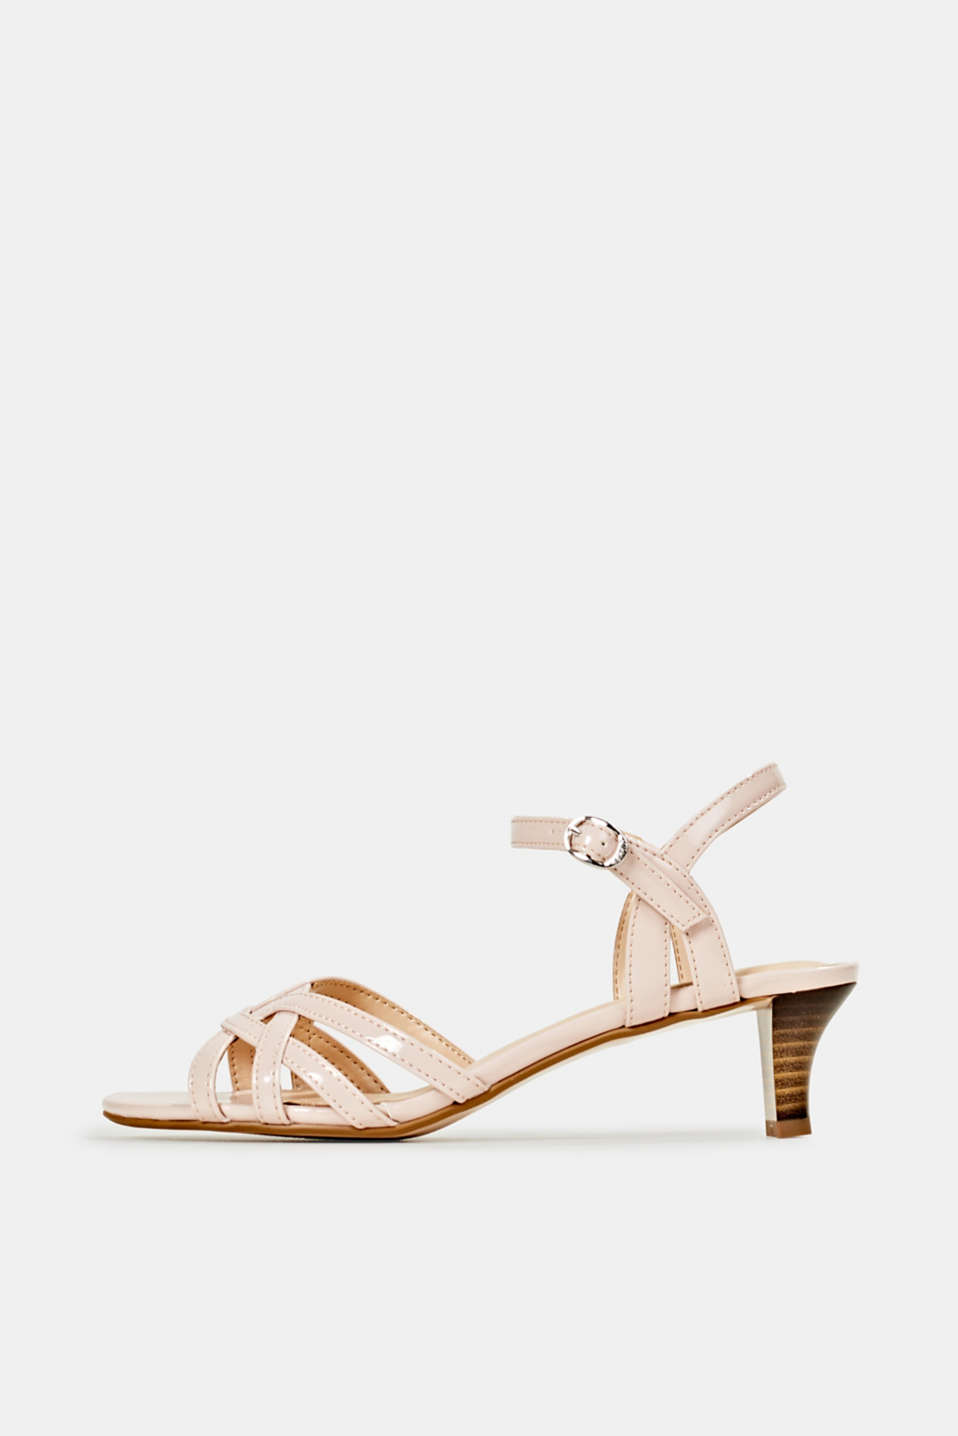 Sandals with straps in a braided look, NUDE, detail image number 0